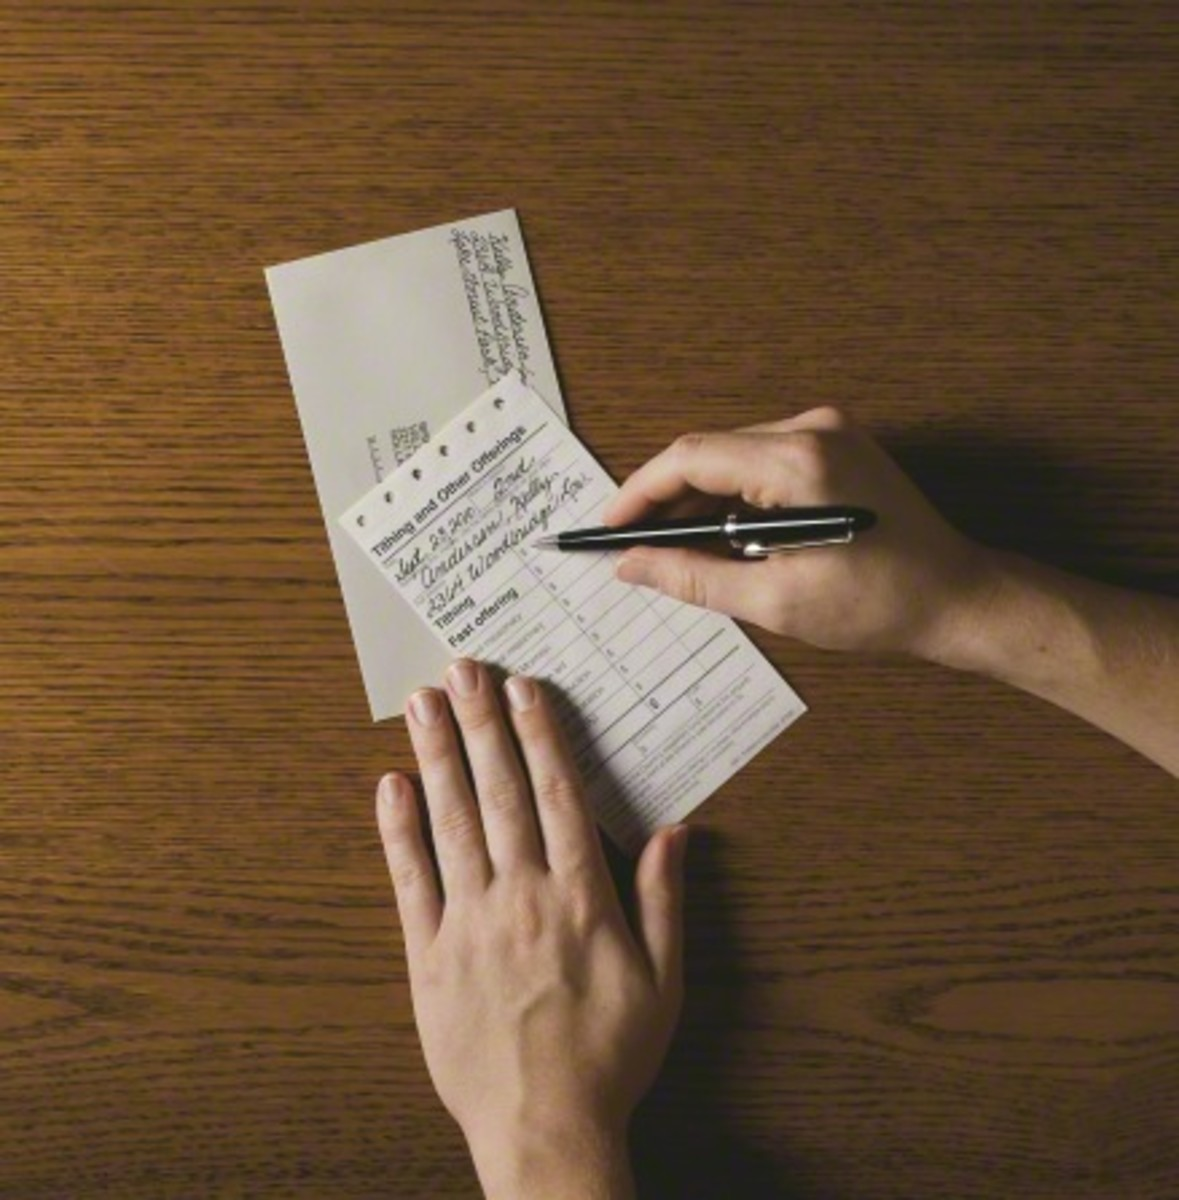 Members of the Church of Jesus Christ of Latter-day Saints can fill out this form by hand and enclose a personal check, money order or cash in the envelope to pay their tithing to their local leaders.